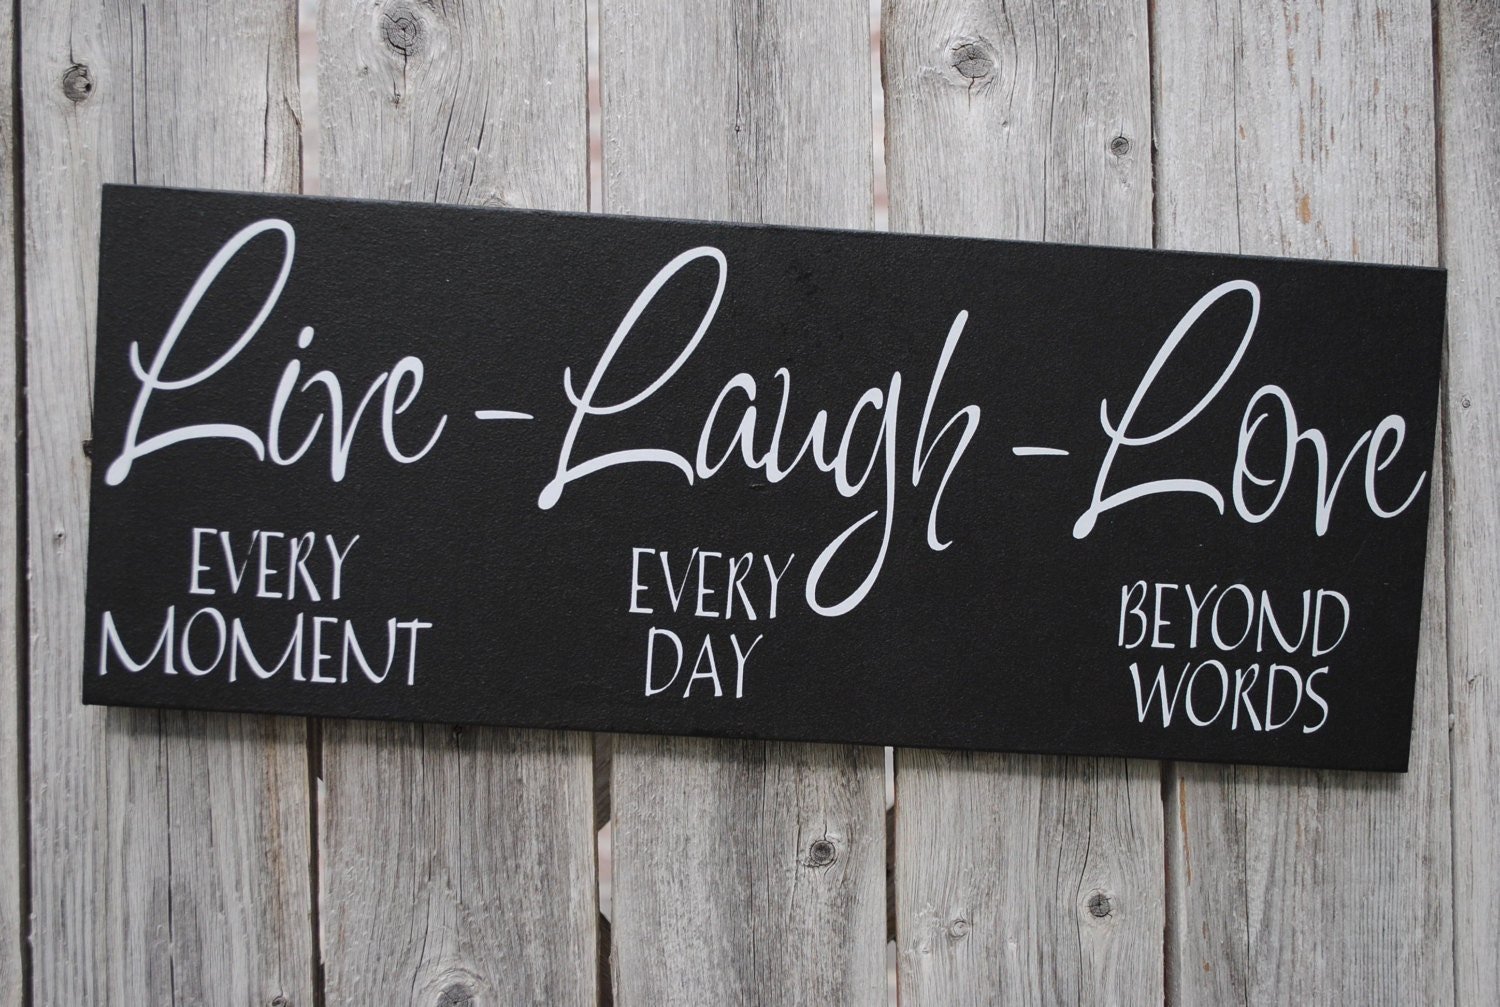 Live Laugh Love 6x18 Wood Sign Home Decor Sign Family Sign. Mortal Kombat Signs Of Stroke. Equil Signs. Volcanic Eruption Signs. Gray Signs Of Stroke. Heat Signs. British Signs. Loves Scorpio Signs. Worksheets Signs Of Stroke